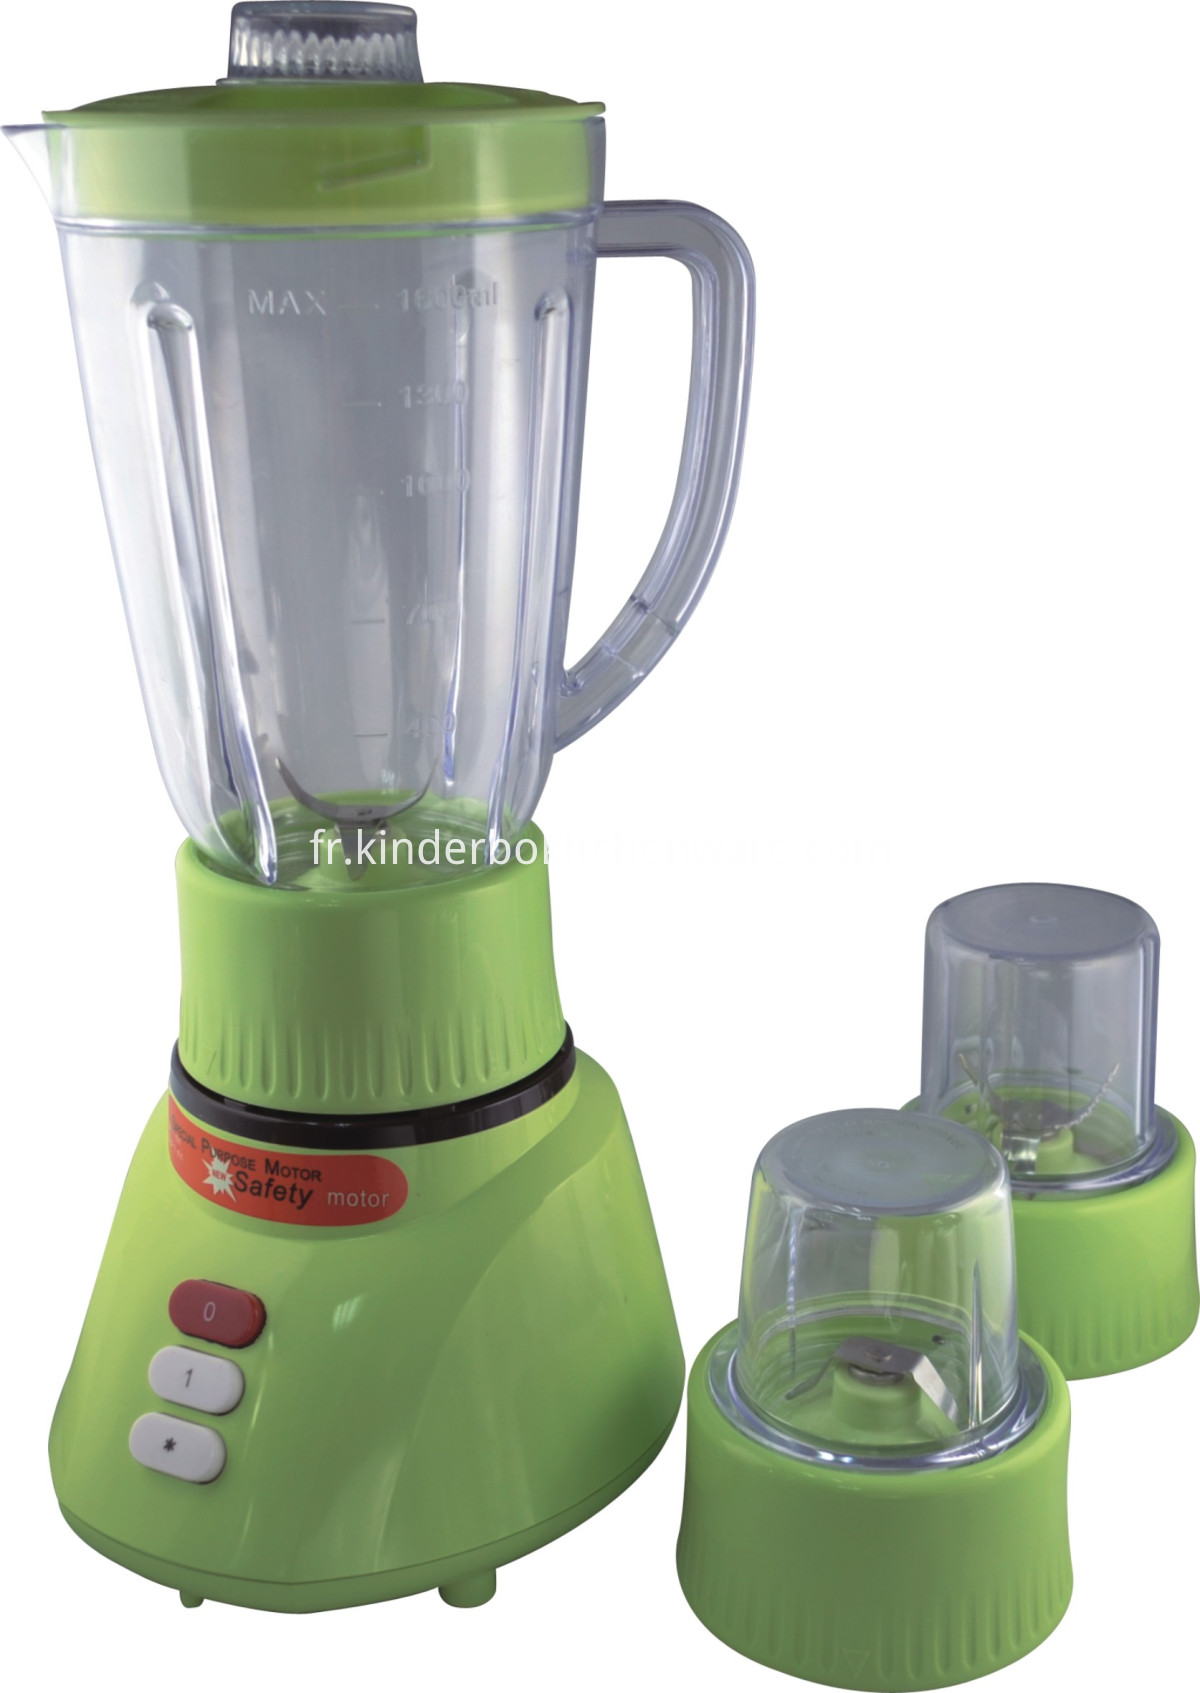 1.6L 3 in 1 blender (green)